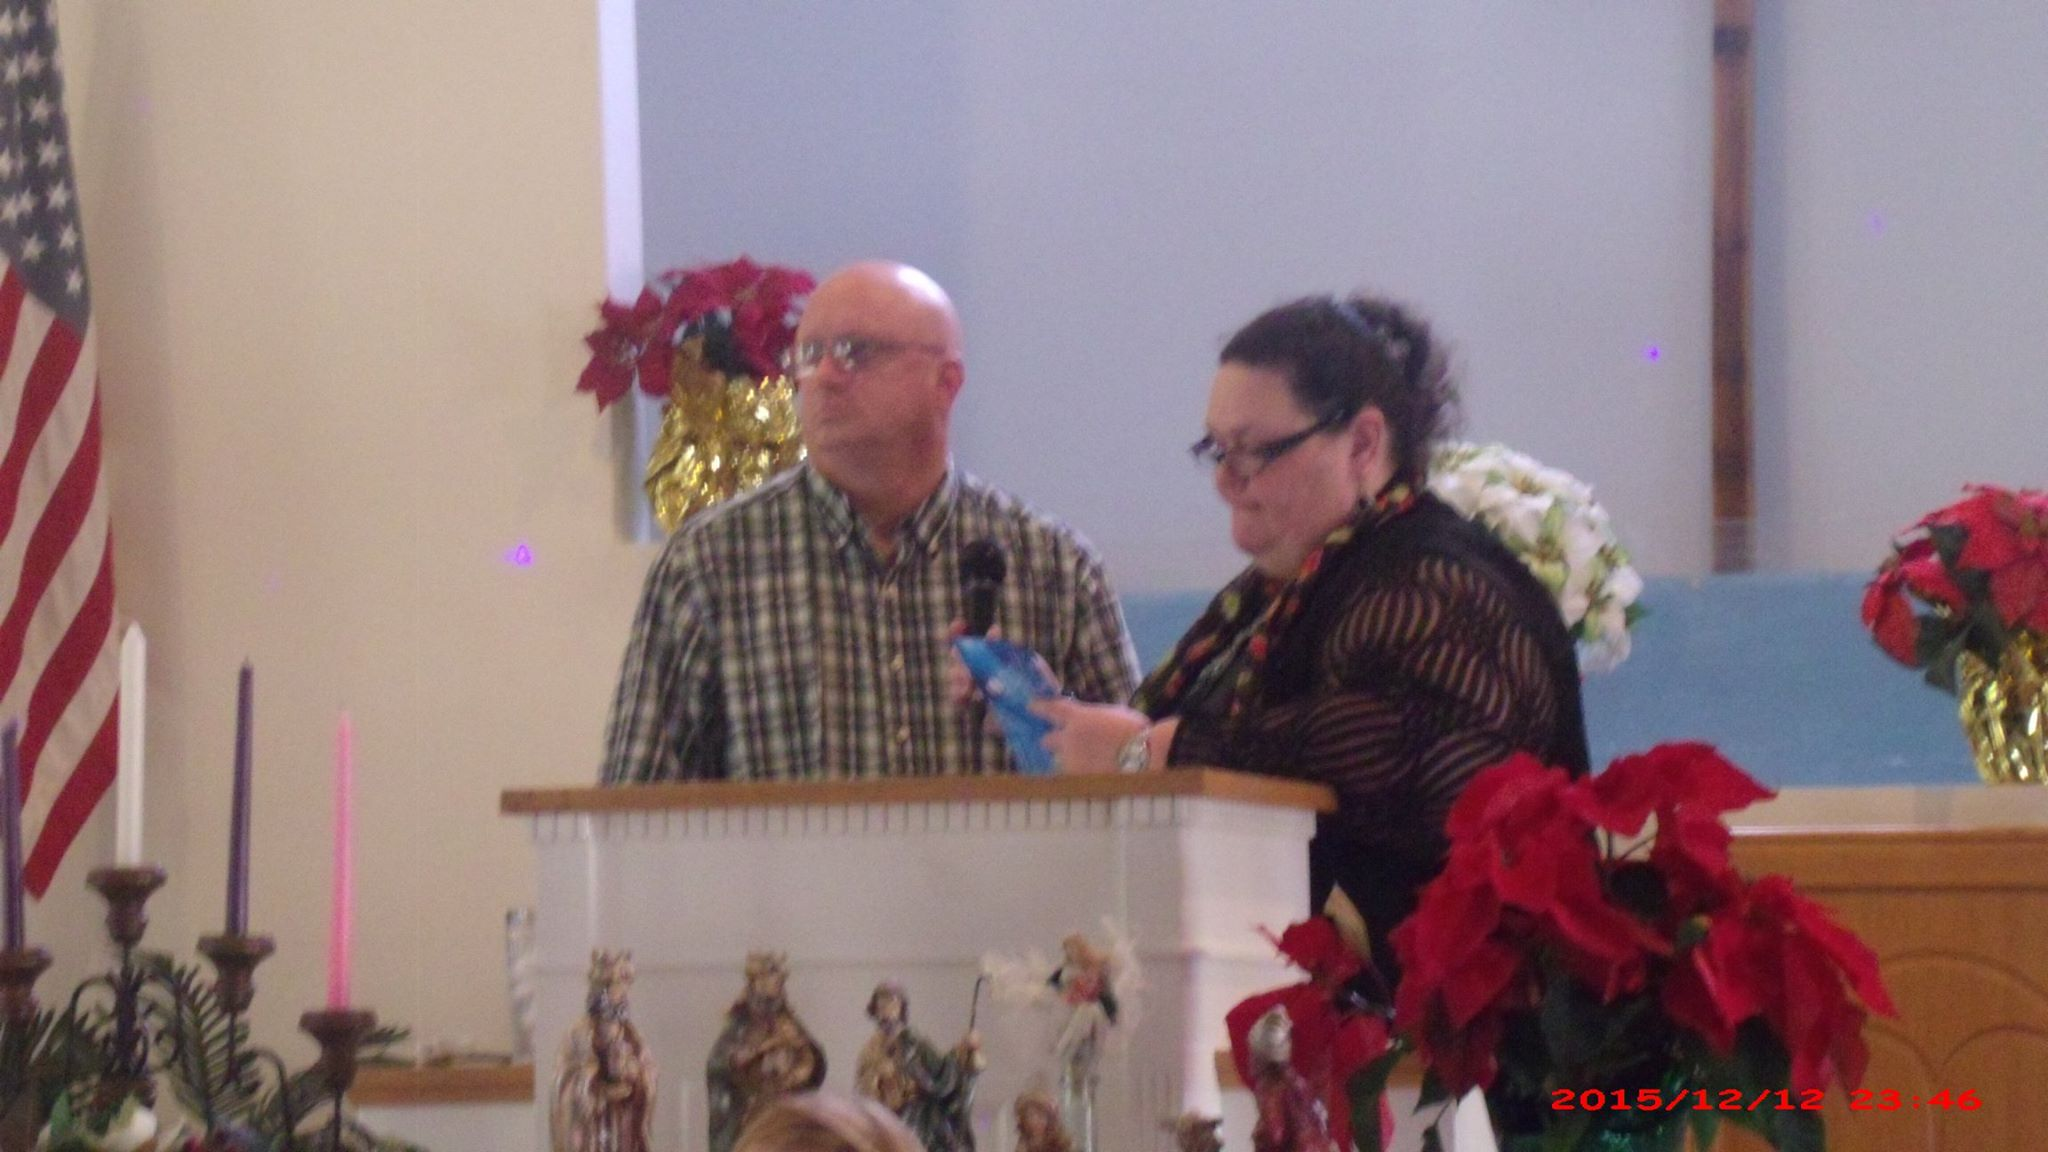 danny and michelle at church